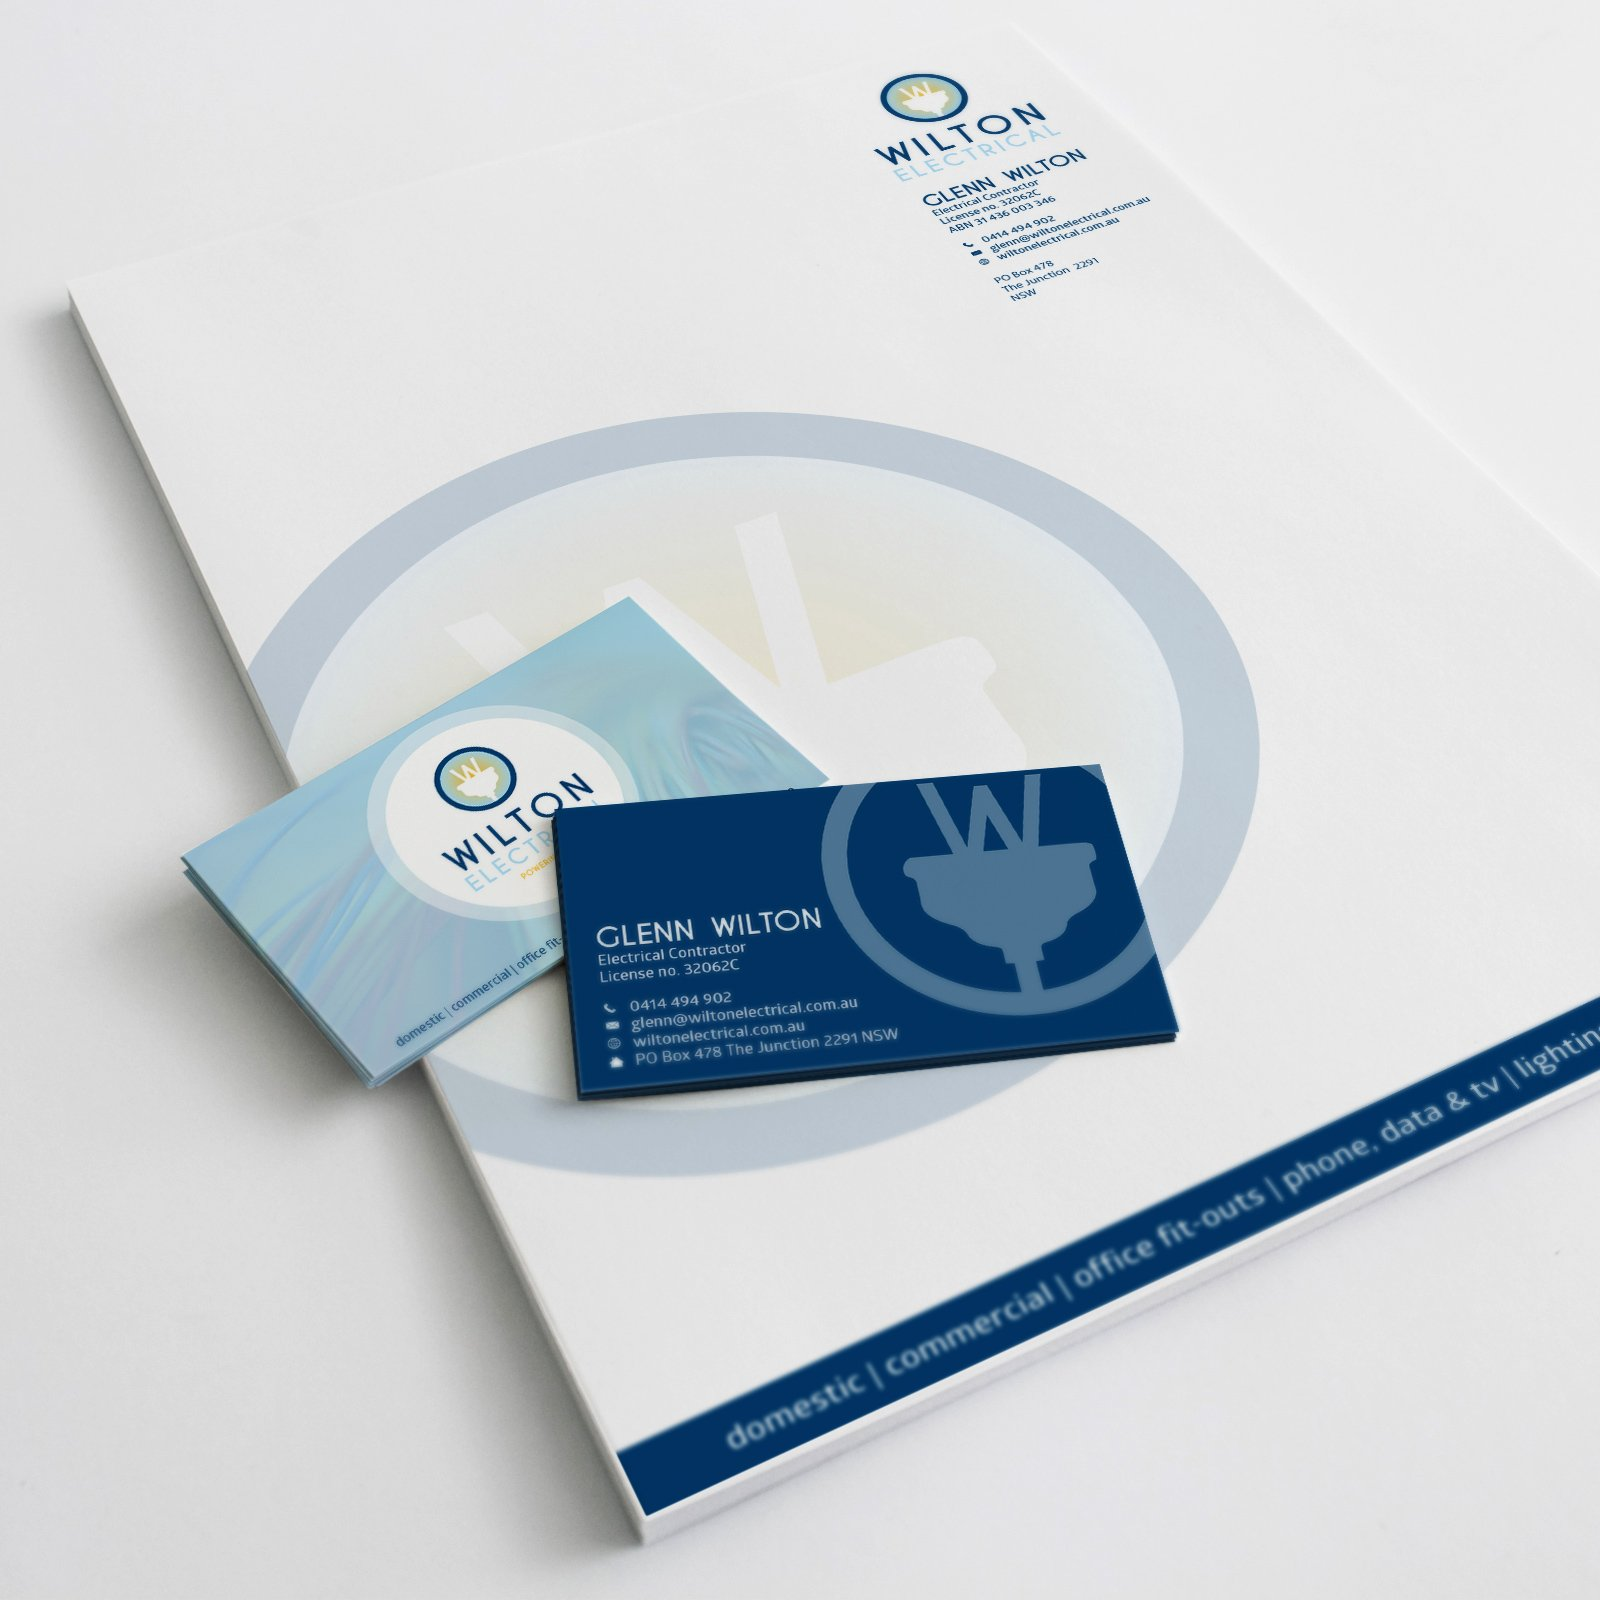 Wilton Electrical Letterhead and Business Card